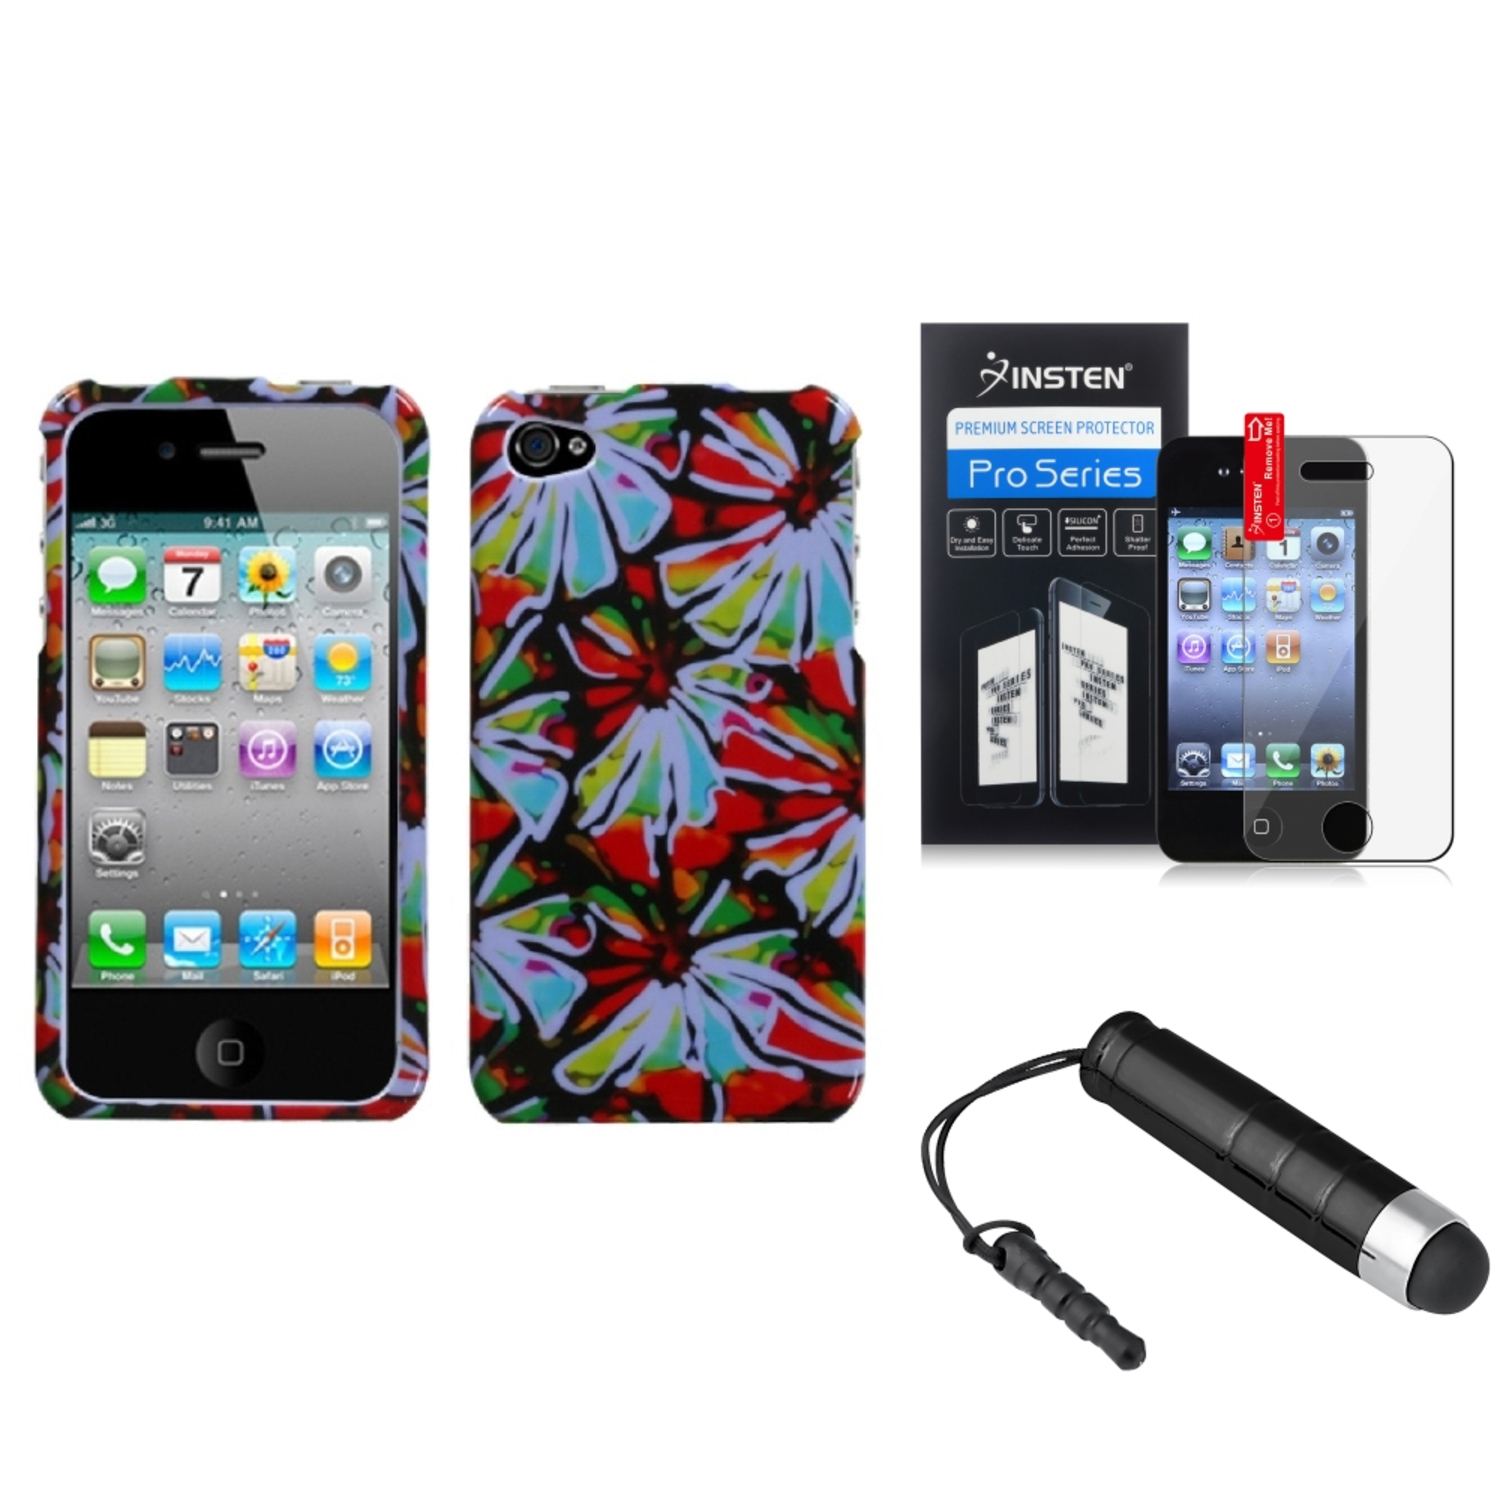 Insten Flower Power Phone Case LCD Screen Protector Pen For APPLE iPhone 4S/4